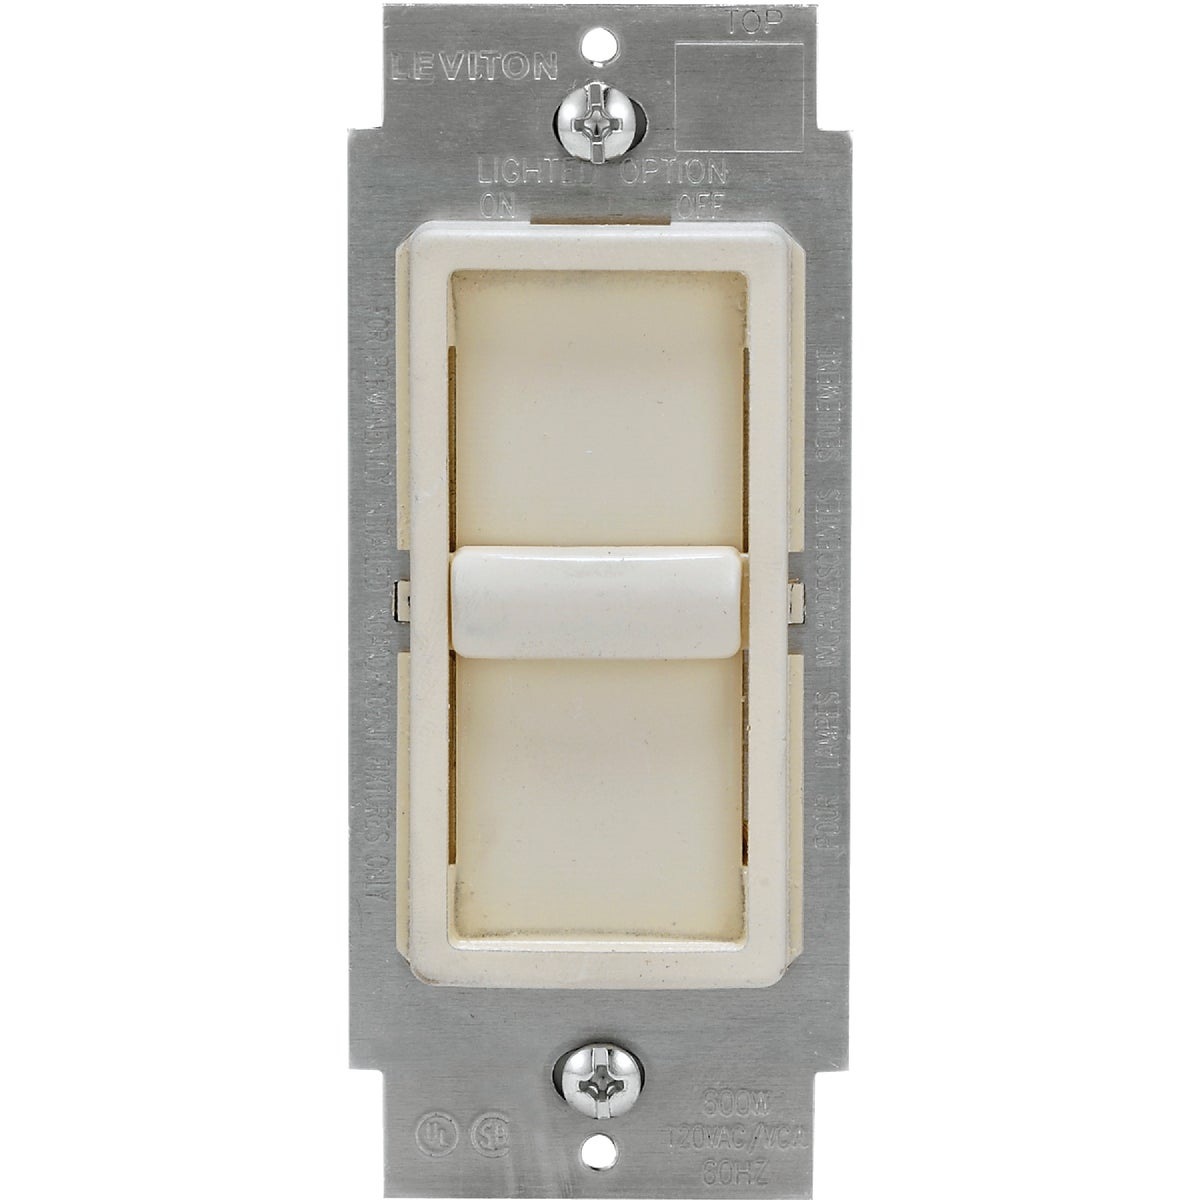 LT ALM UNIVERSAL DIMMER - C28-06672-1LT by Leviton Mfg Co